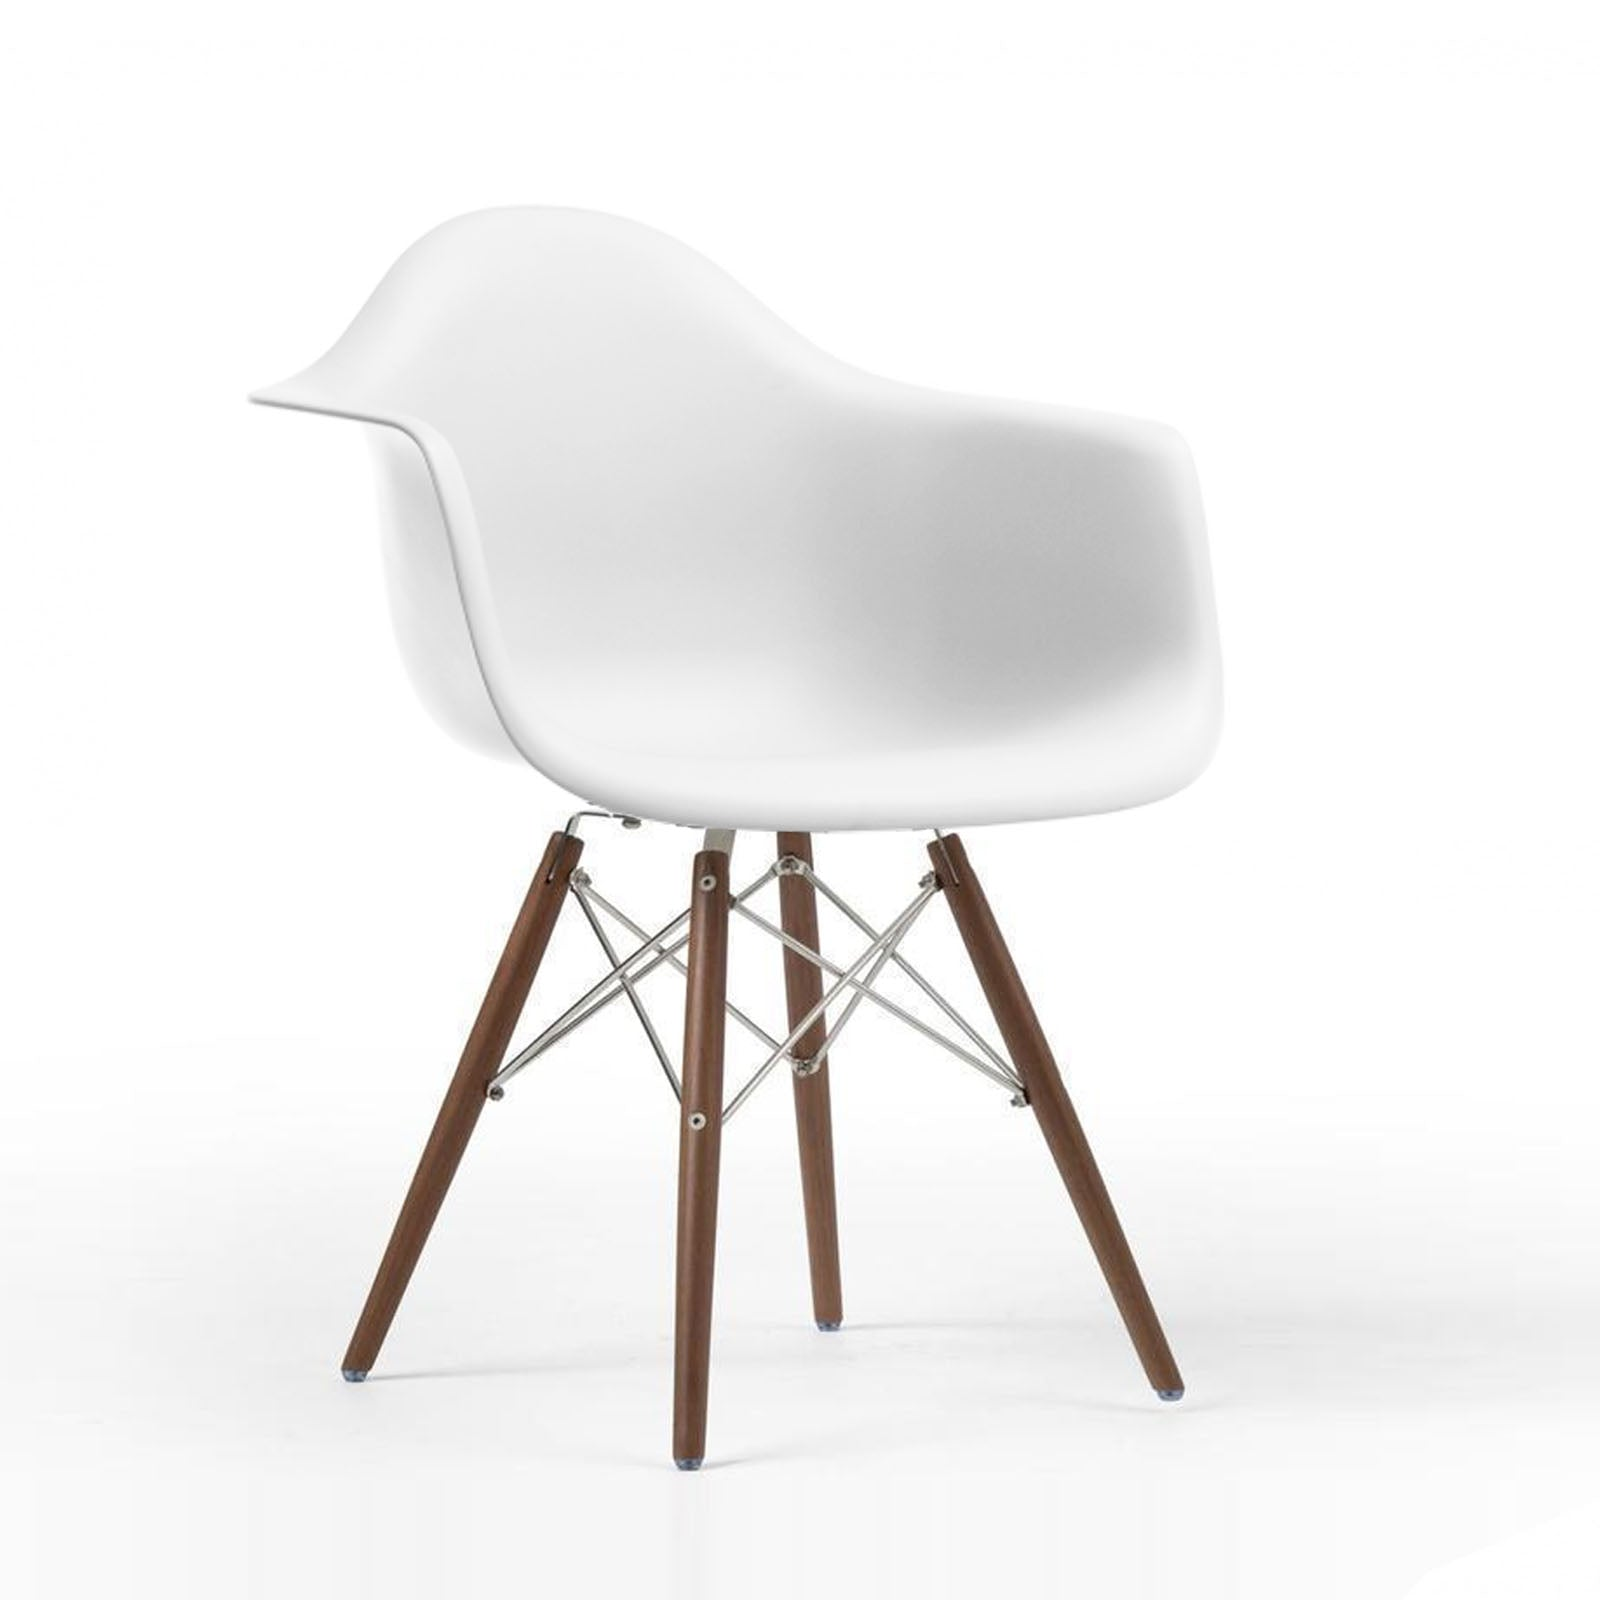 Dinning Chair- Plastic- PC-018W-W -  كرسى سفرة بلاستيك - Shop Online Furniture and Home Decor Store in Dubai, UAE at ebarza